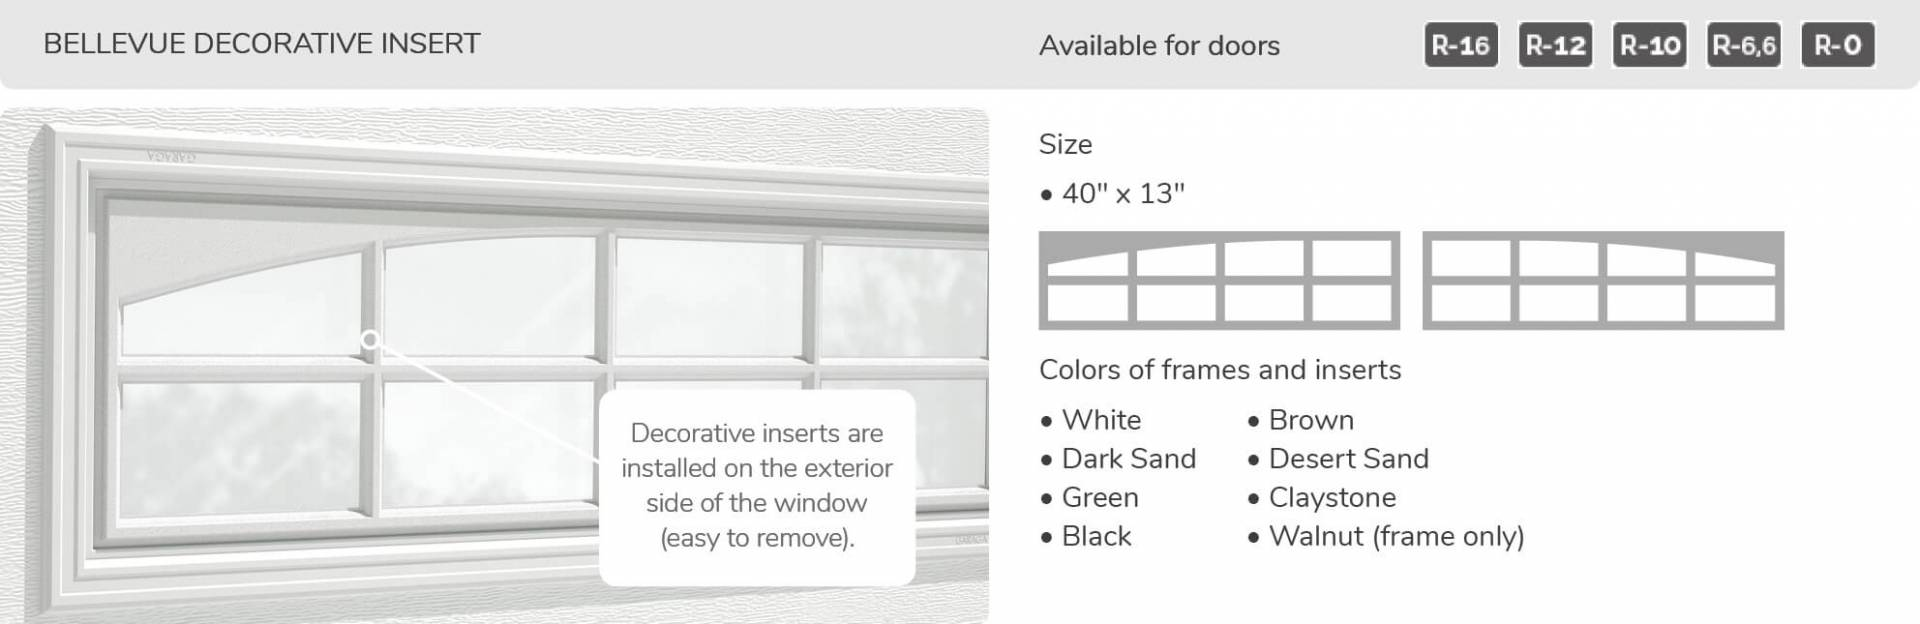 Bellevue Decorative Insert, 40' x 13', available for doors R-16, R-12, R-10, R-6,6 and R-0